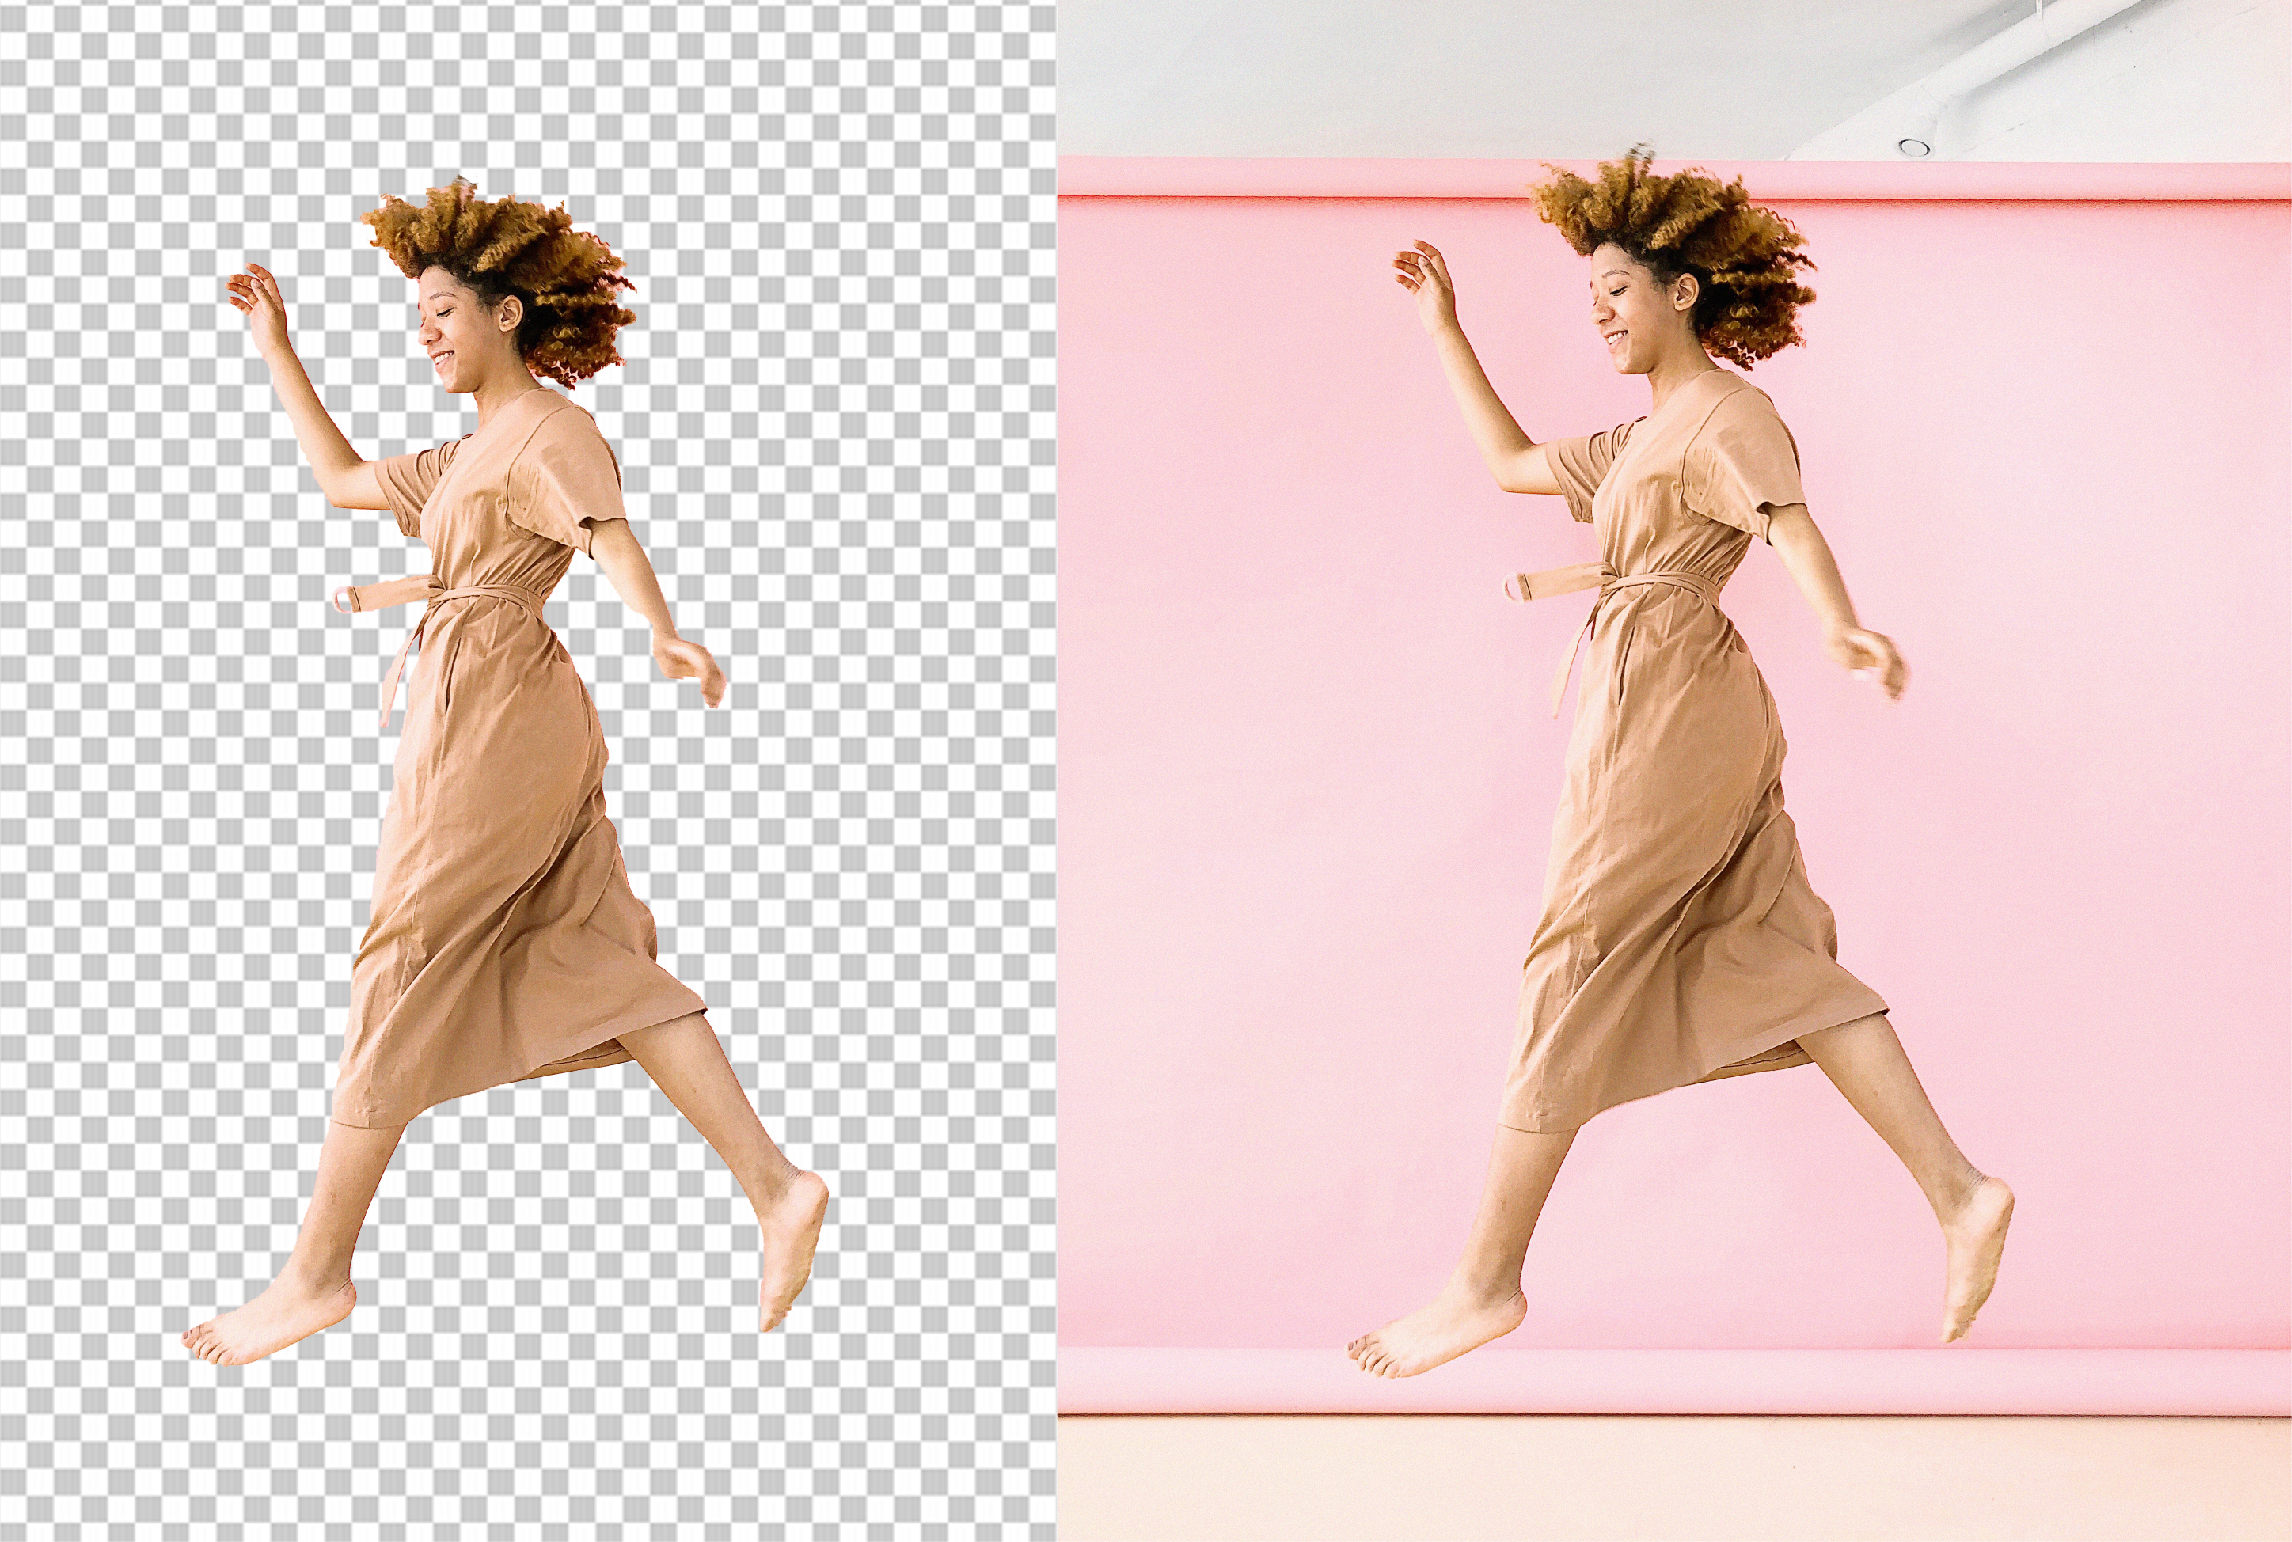 I Will do Image and Product Background Remove Perfectly in Short Time